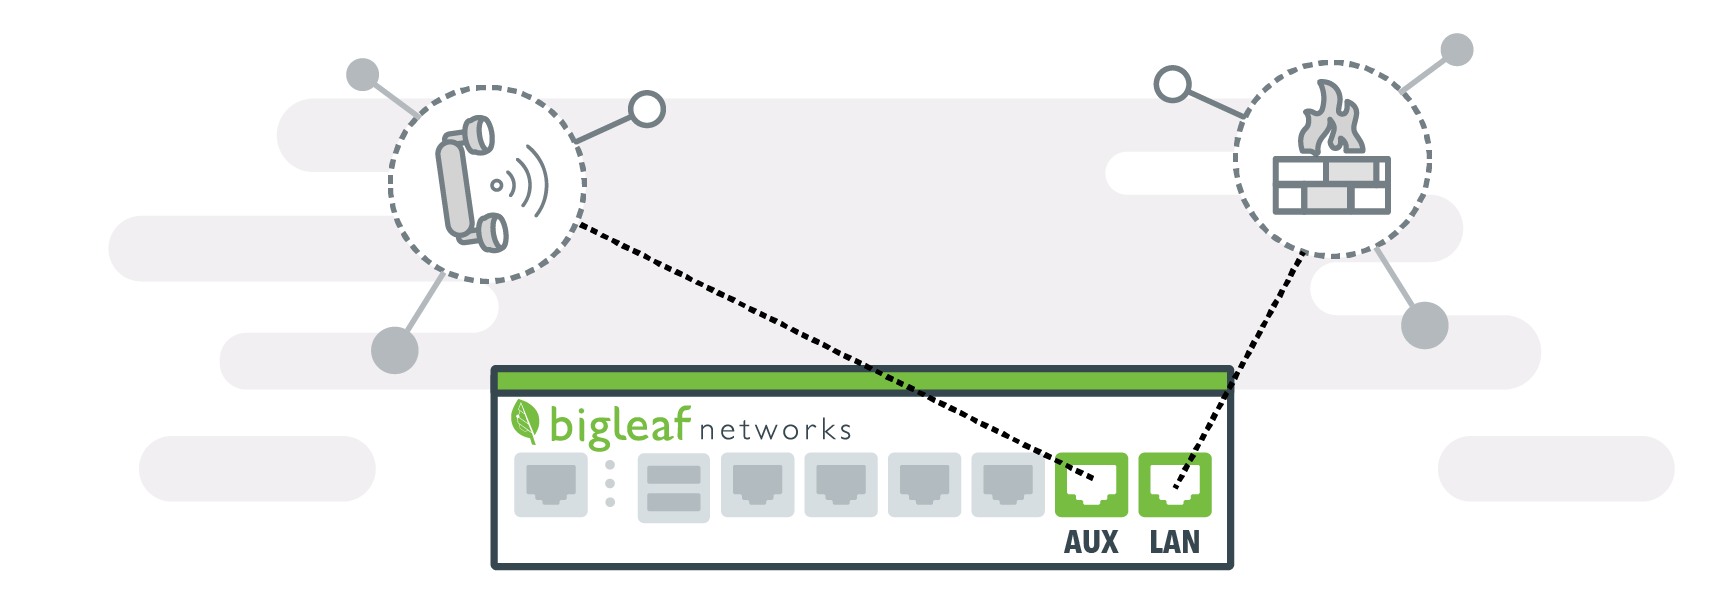 New! Dual LAN support on Bigleaf edge routers for easier